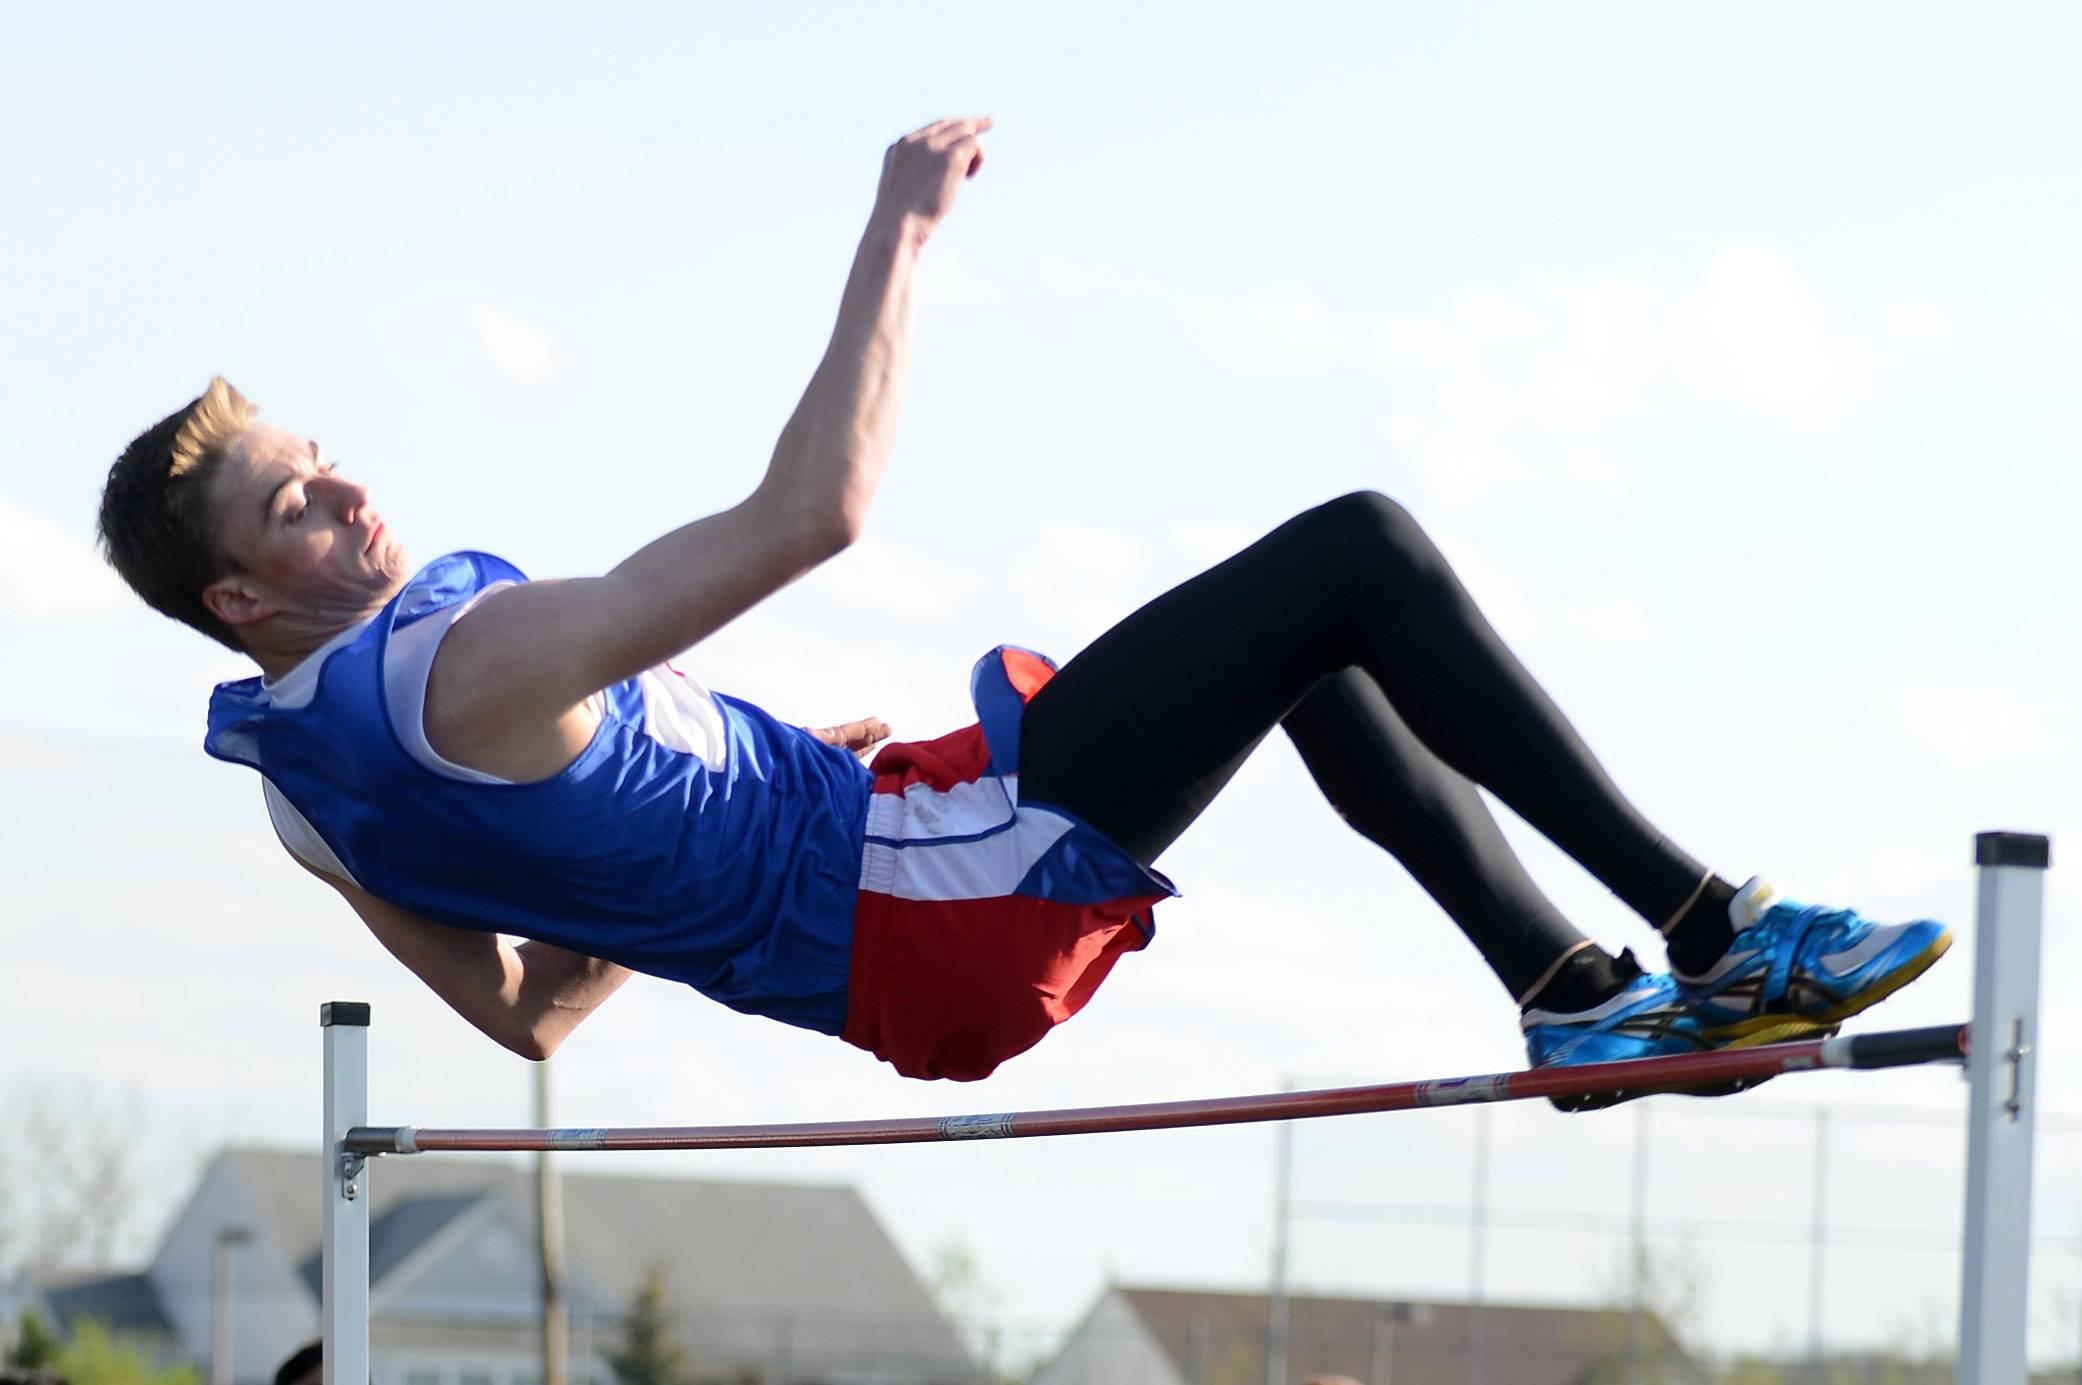 Tyler Maryanski of Marmion finished first in the high jump at the Kane County boys track meet in Streamwood Friday.